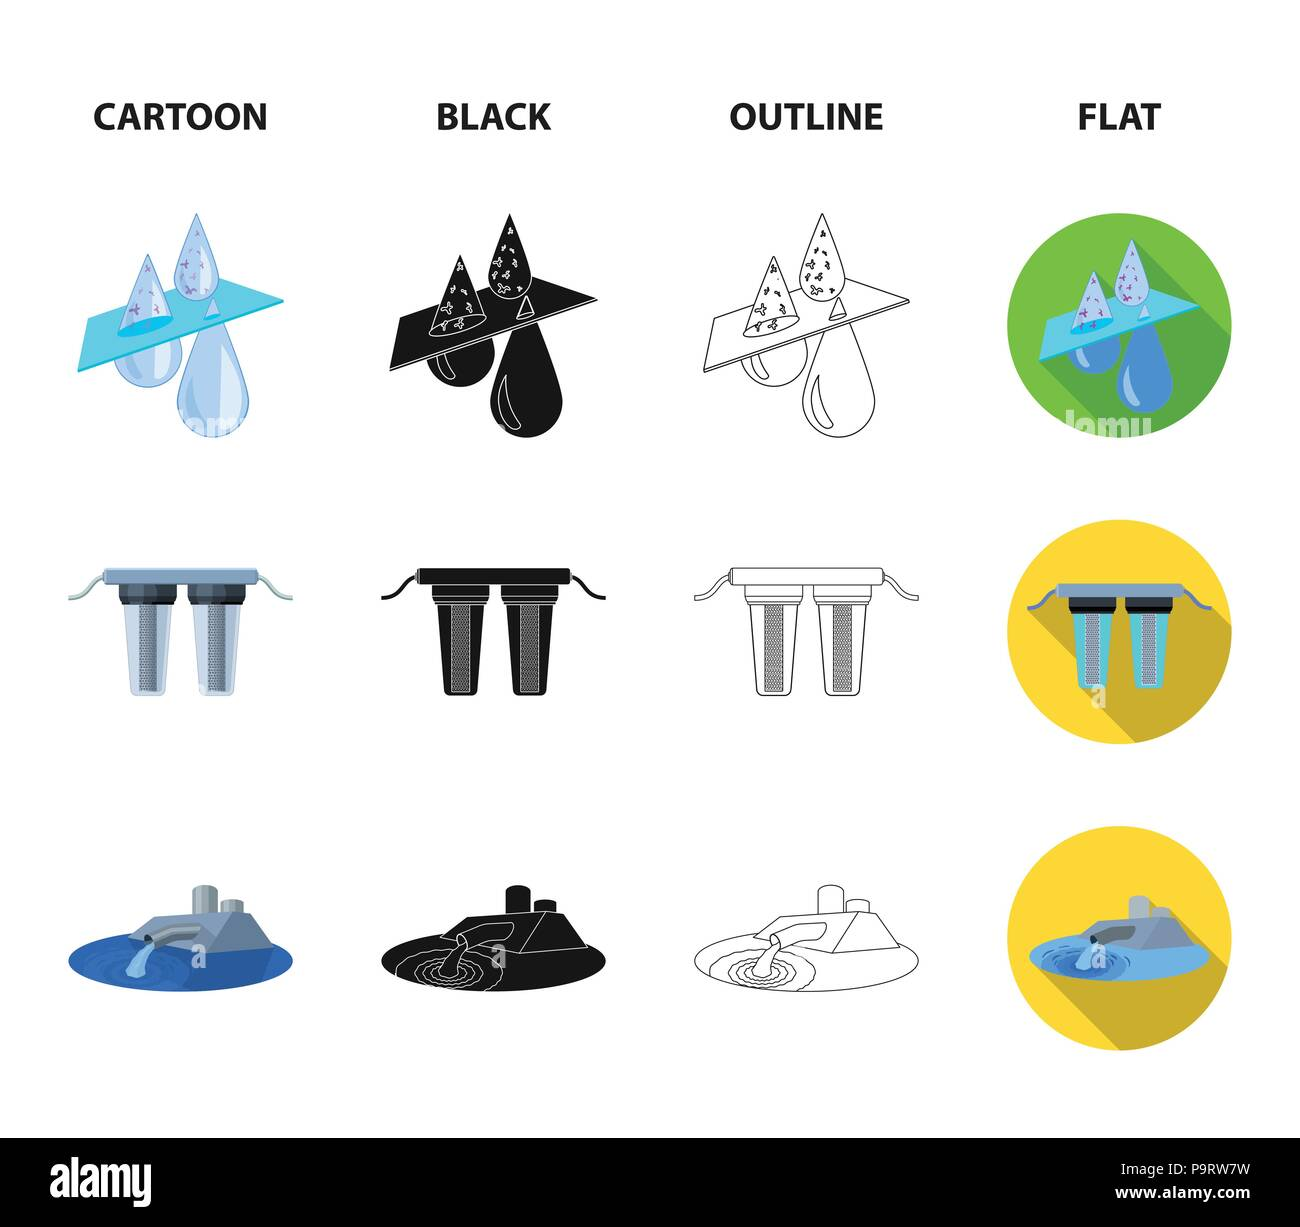 Filter Filtration Nature Eco Bio Water System Set Diagram Collection Icons In Cartoonblackoutlineflat Style Vector Symbol Stock Illustratio